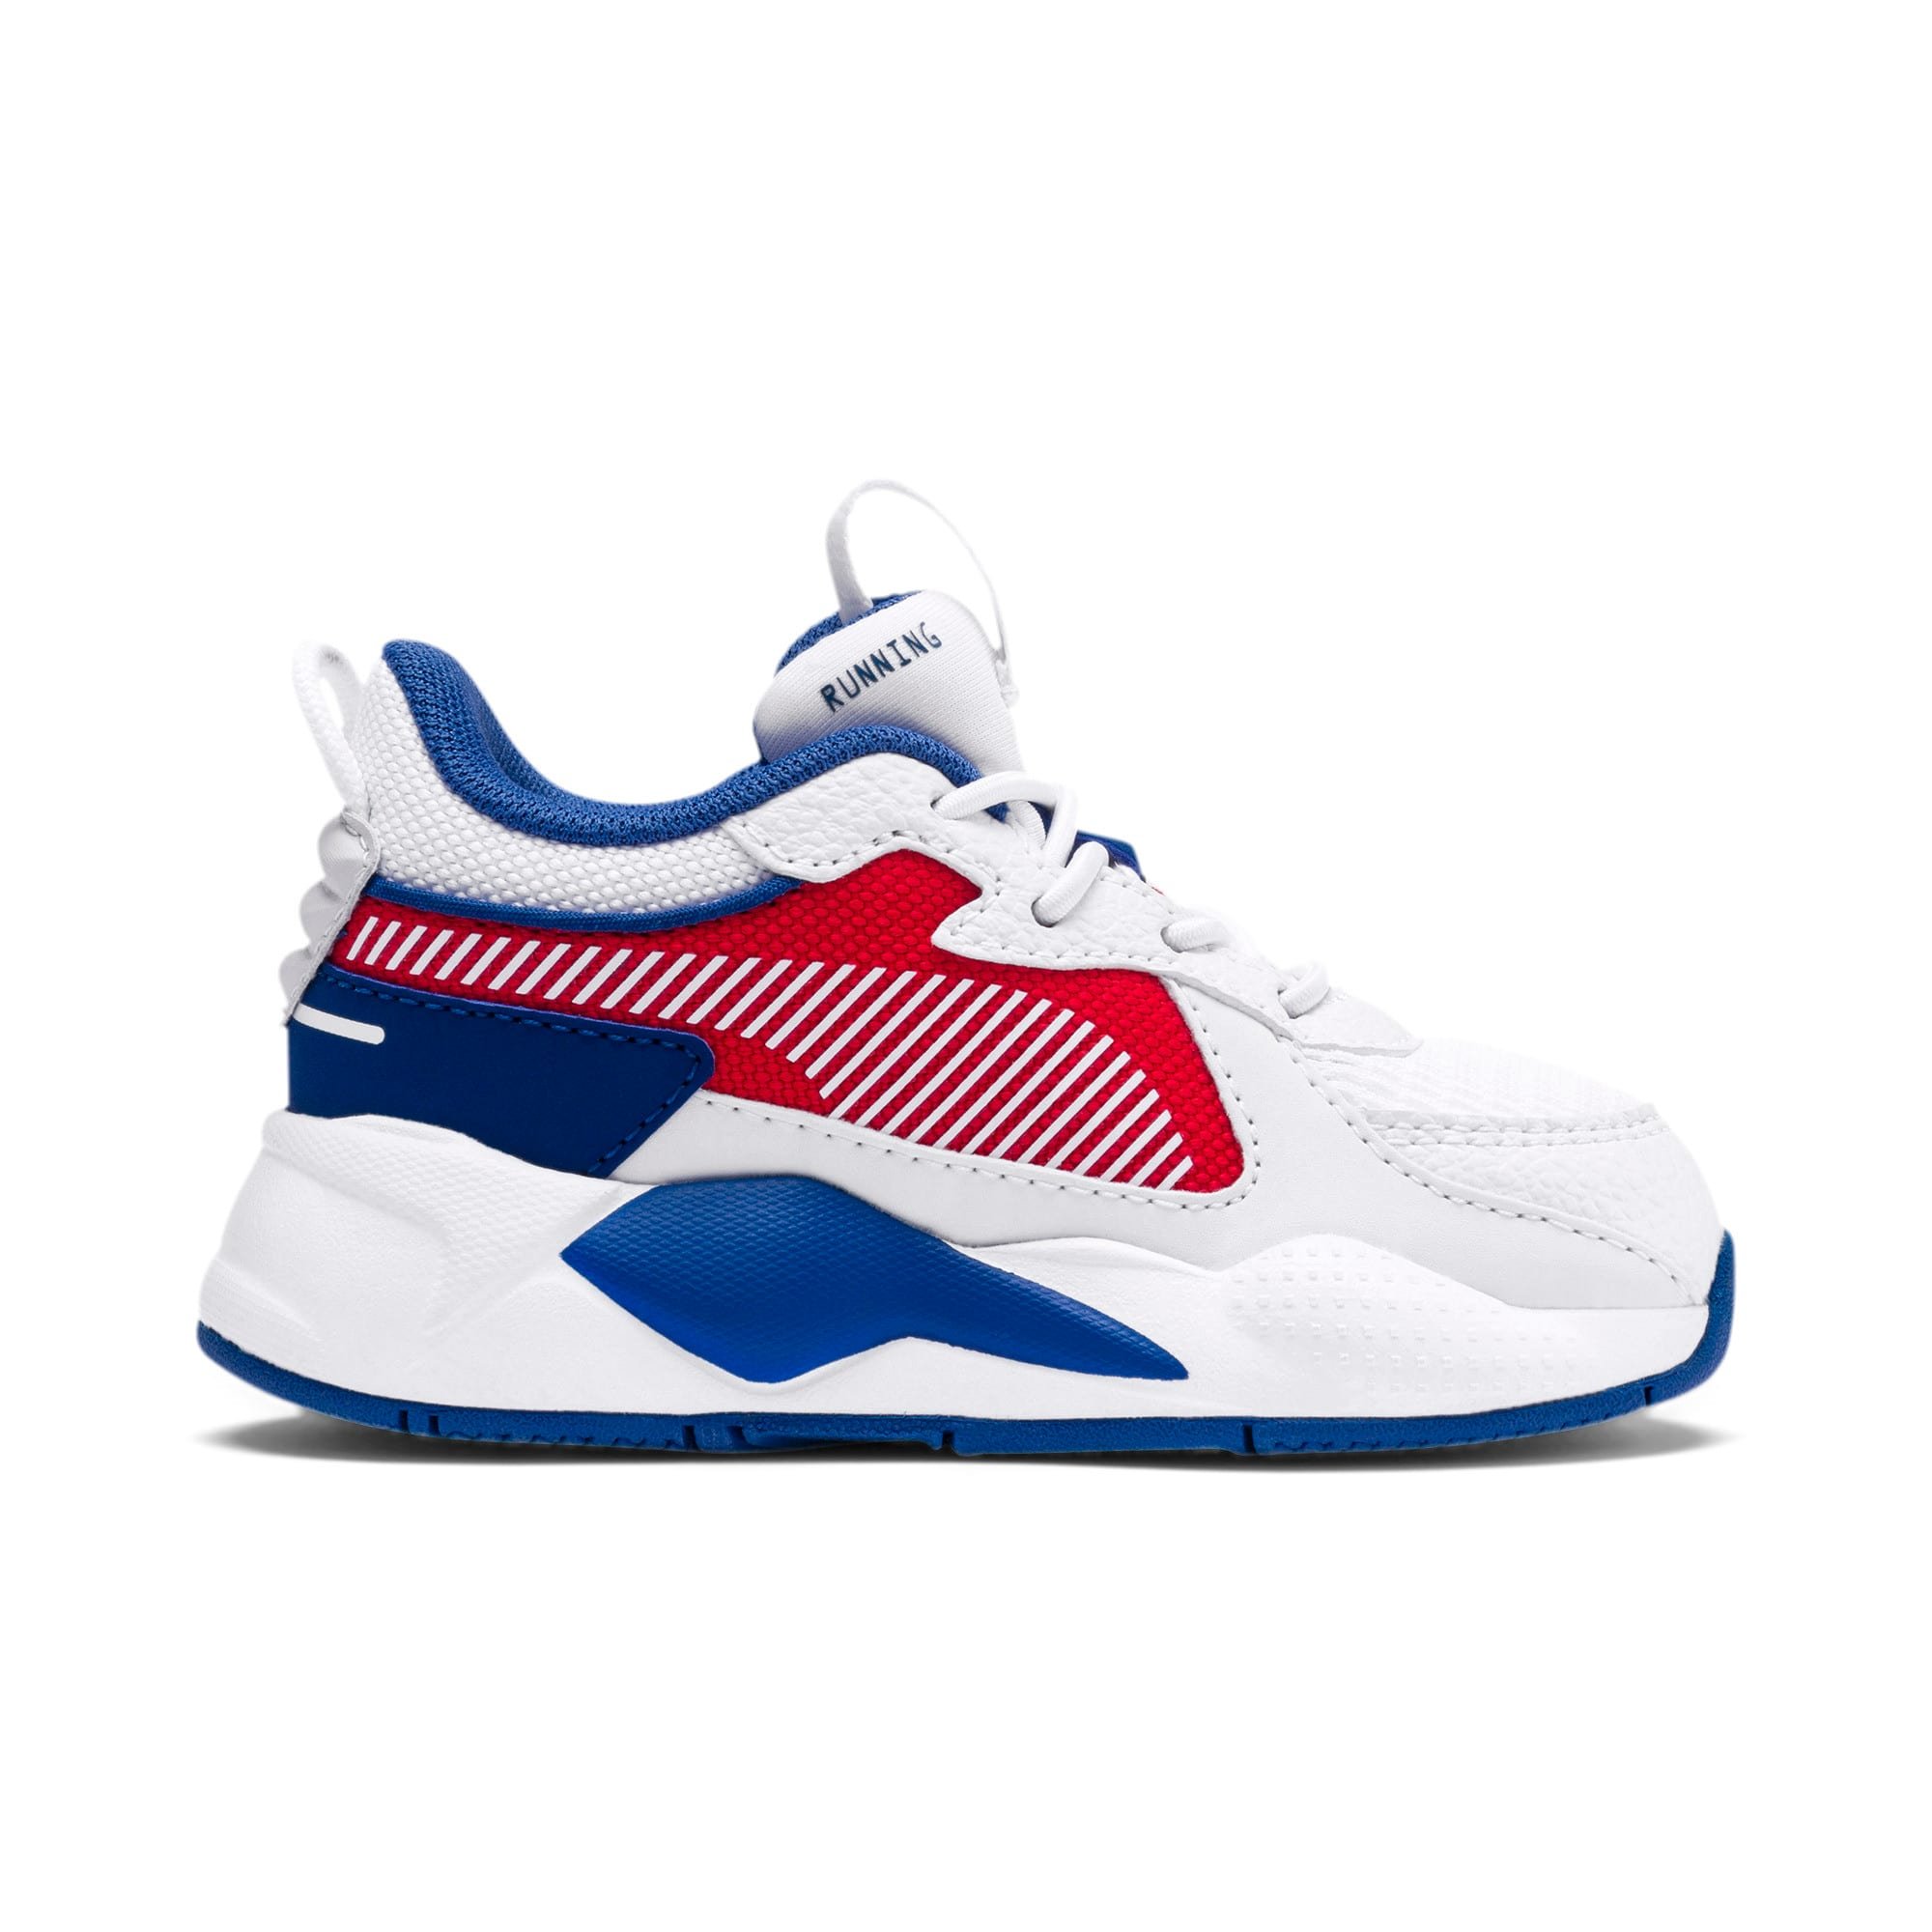 Thumbnail 5 of RS-X Hard Drive AC Toddler Shoes, Puma White-High Risk Red, medium